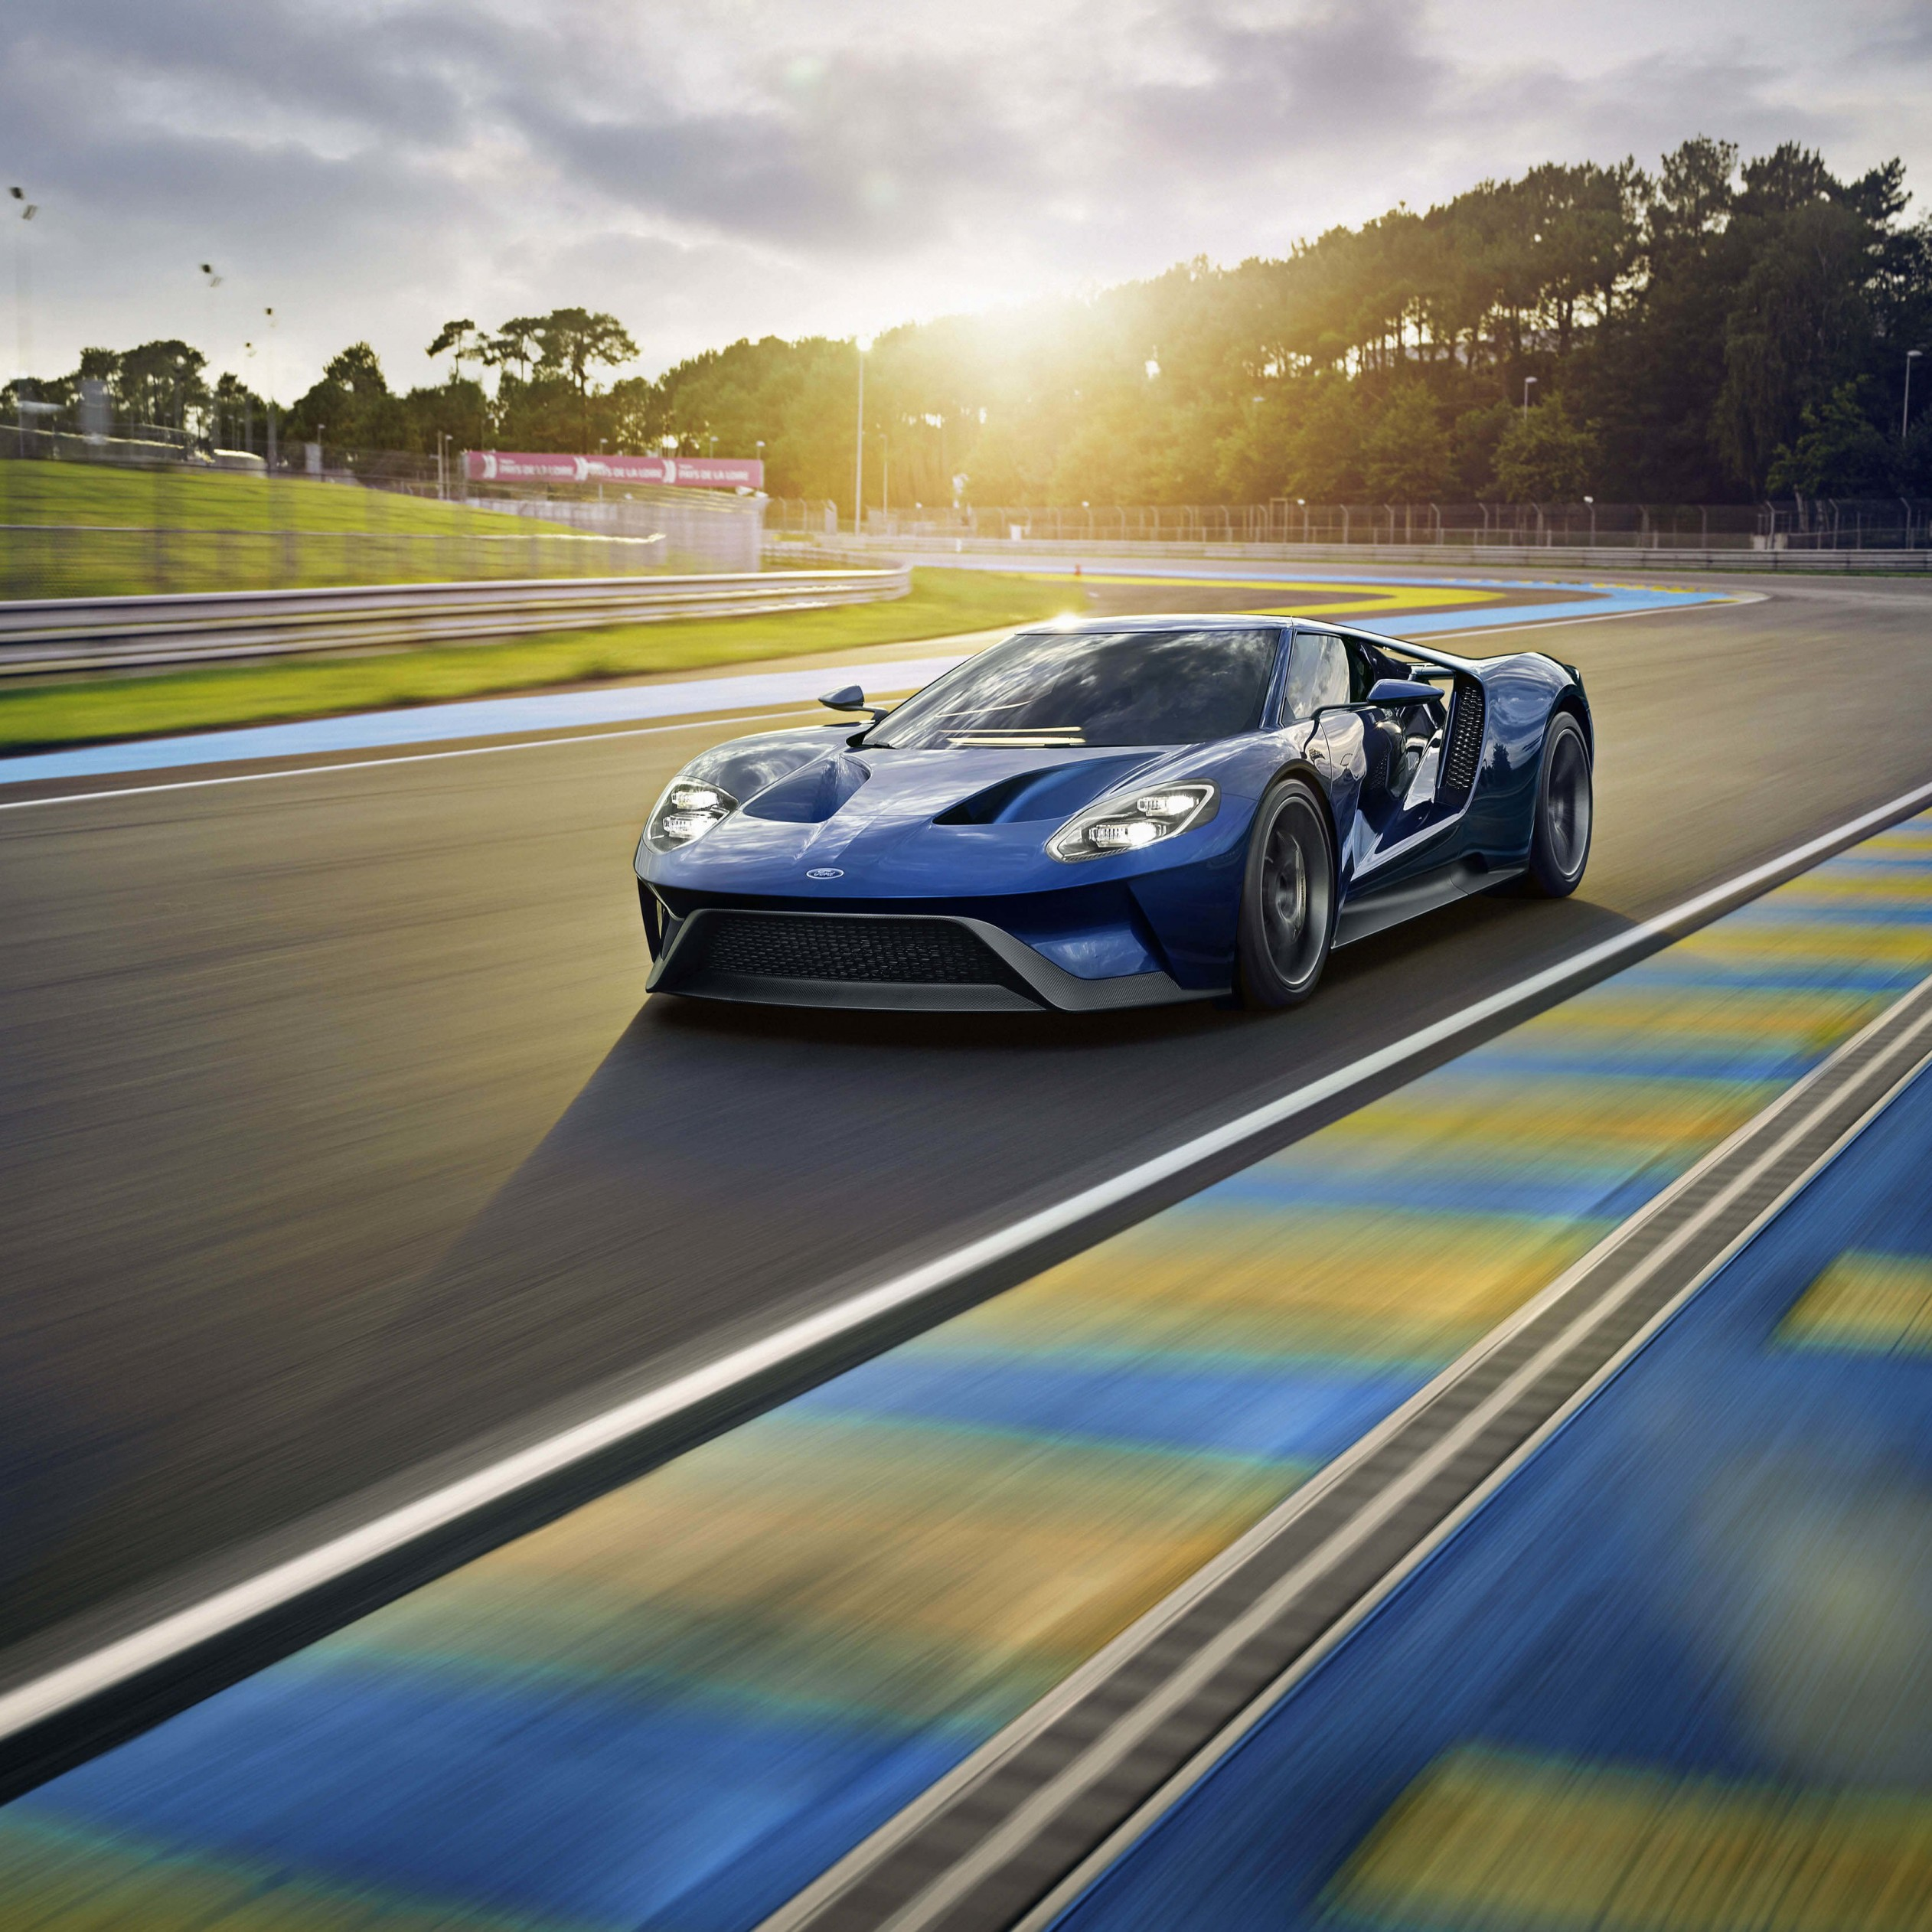 Ford GT Supercar Wallpaper for Apple iPad Air